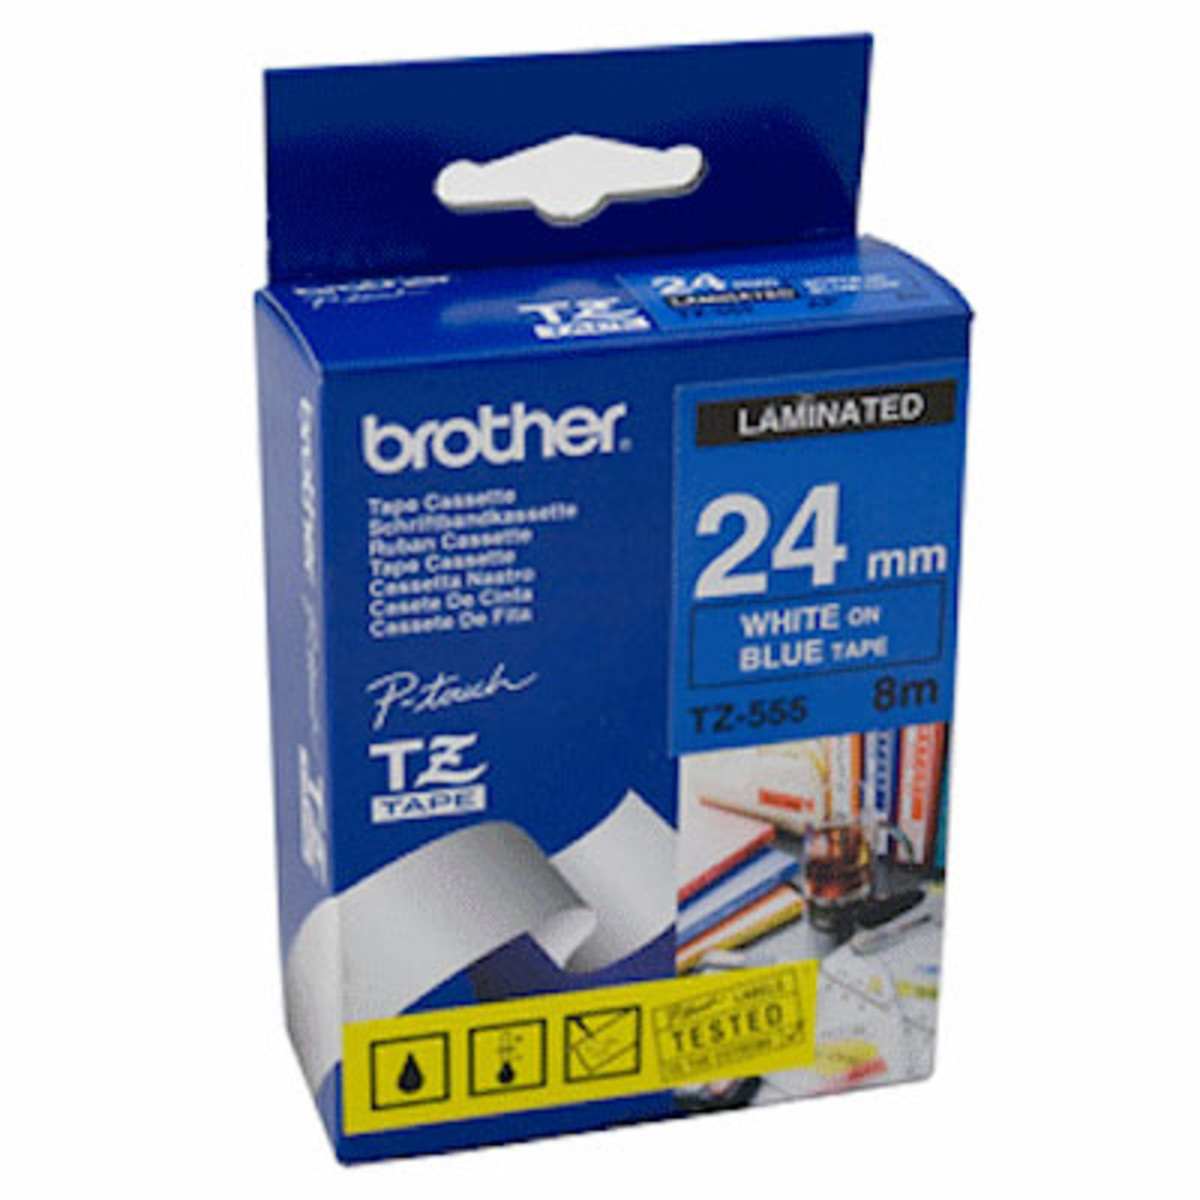 Brother TZ-555 24mm White on Blue Tape